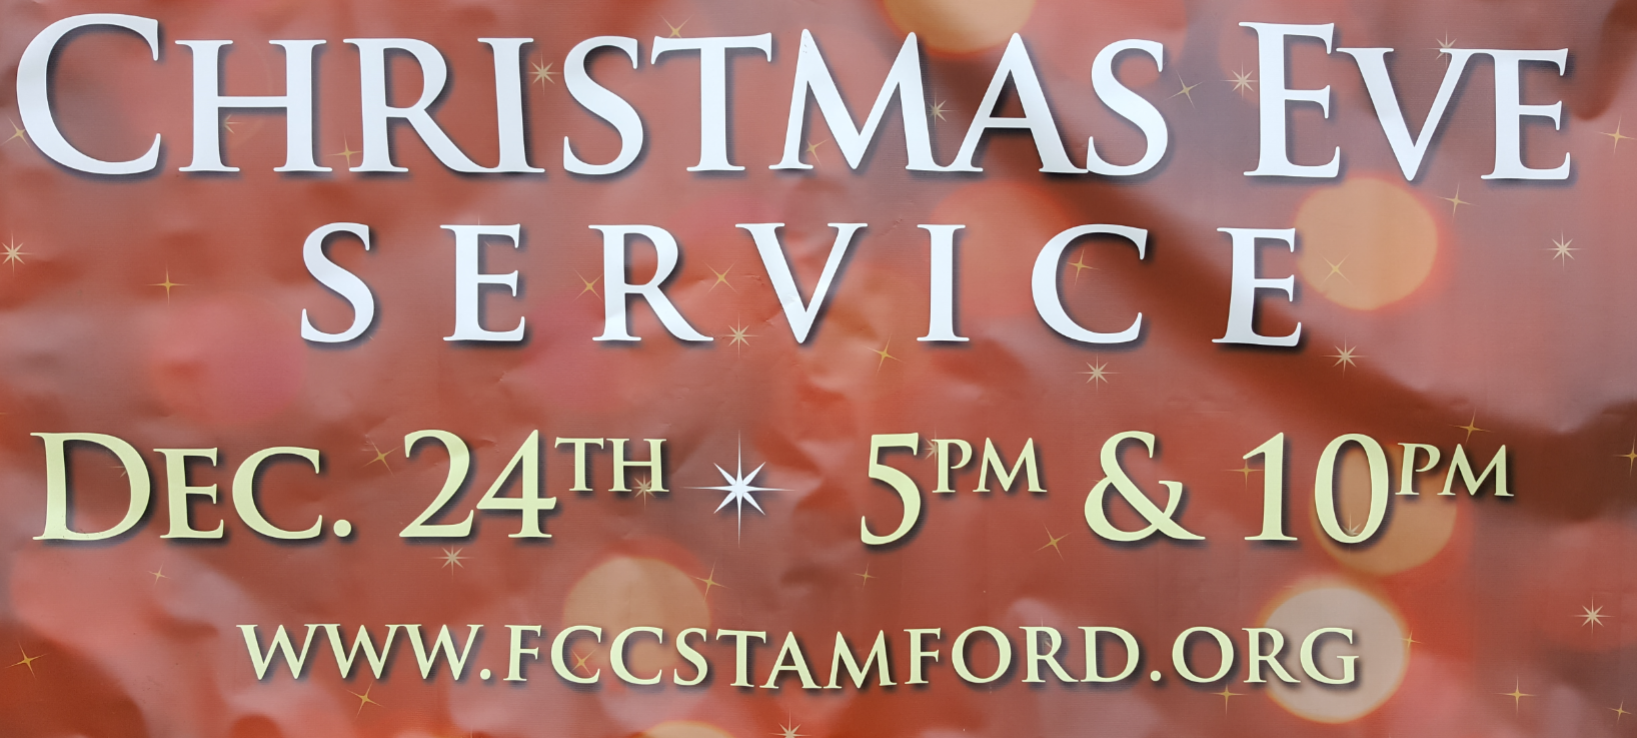 Christmas Eve Family Worship Service @ First Congregational Church | Stamford | Connecticut | United States